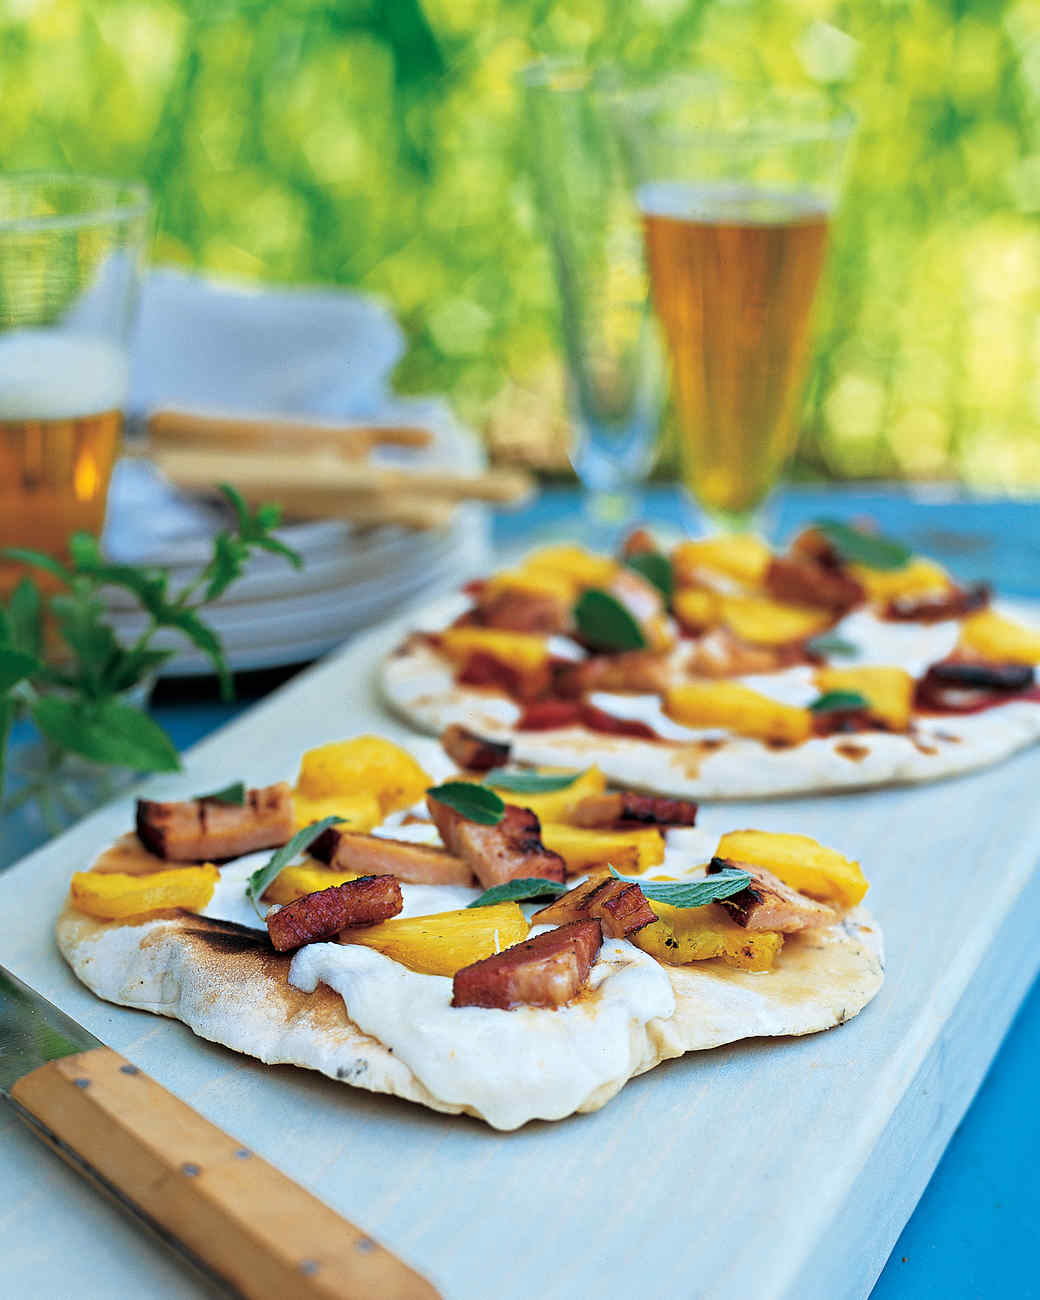 Grilled Pizzas with Canadian Bacon and Pineapple